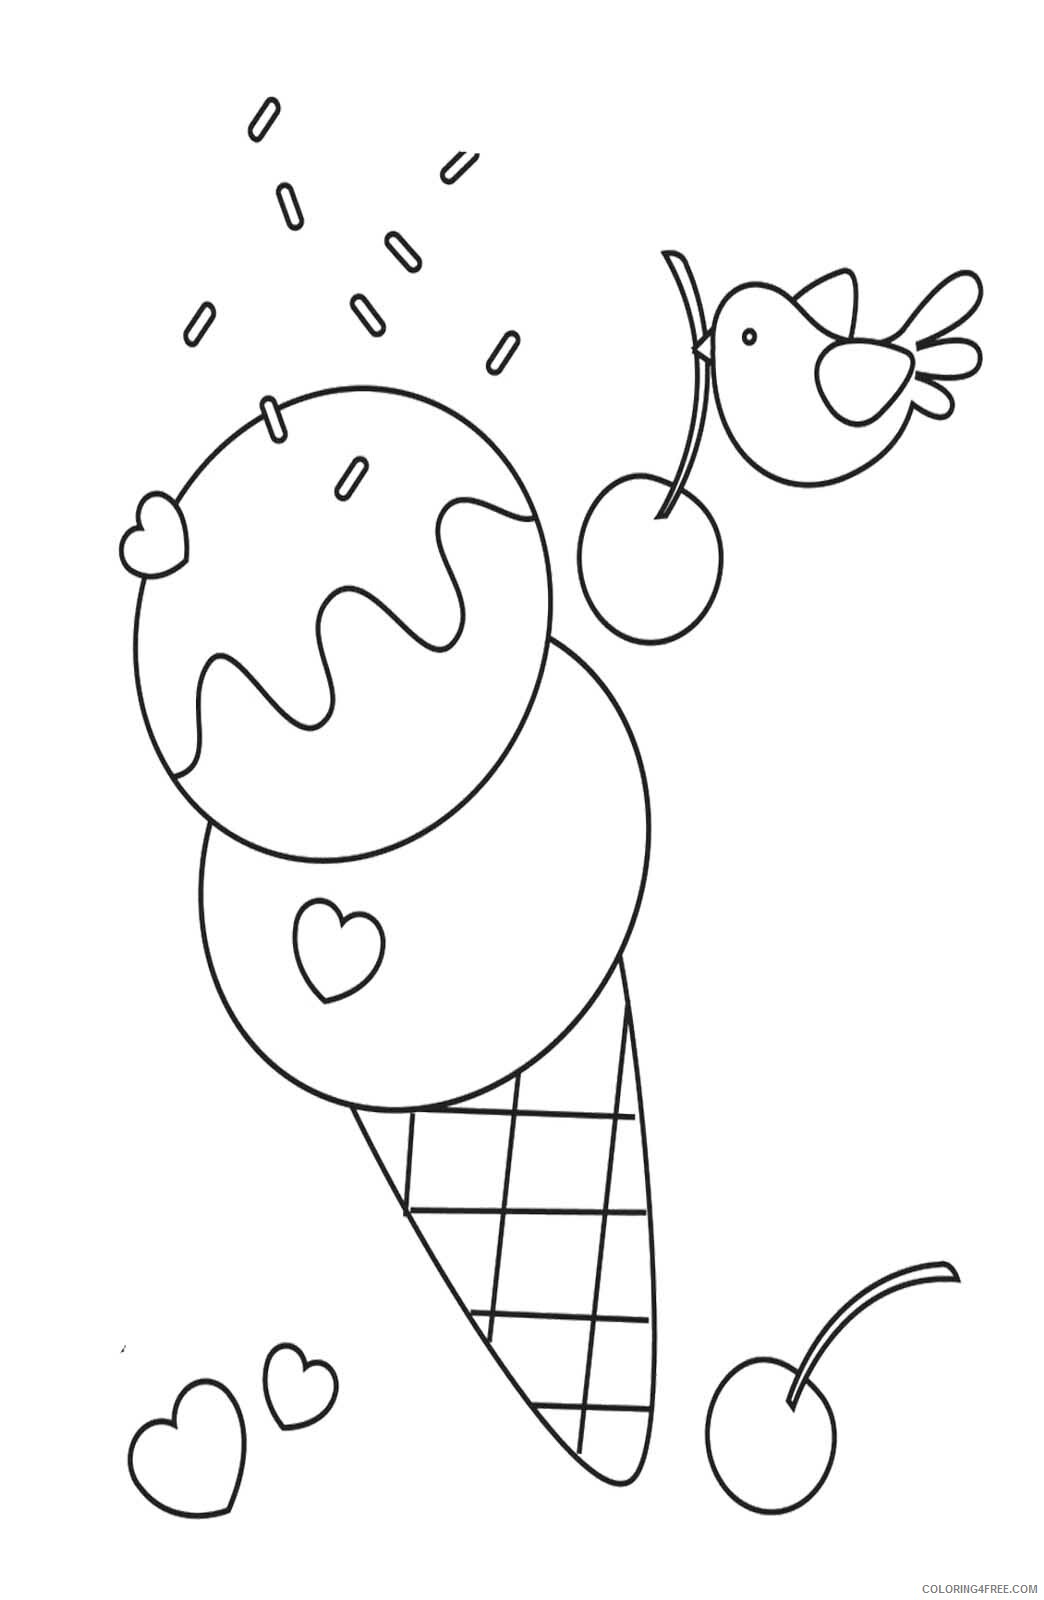 Ice Cream Coloring Pages for Kids Free Ice Cream Printable 2021 355 Coloring4free